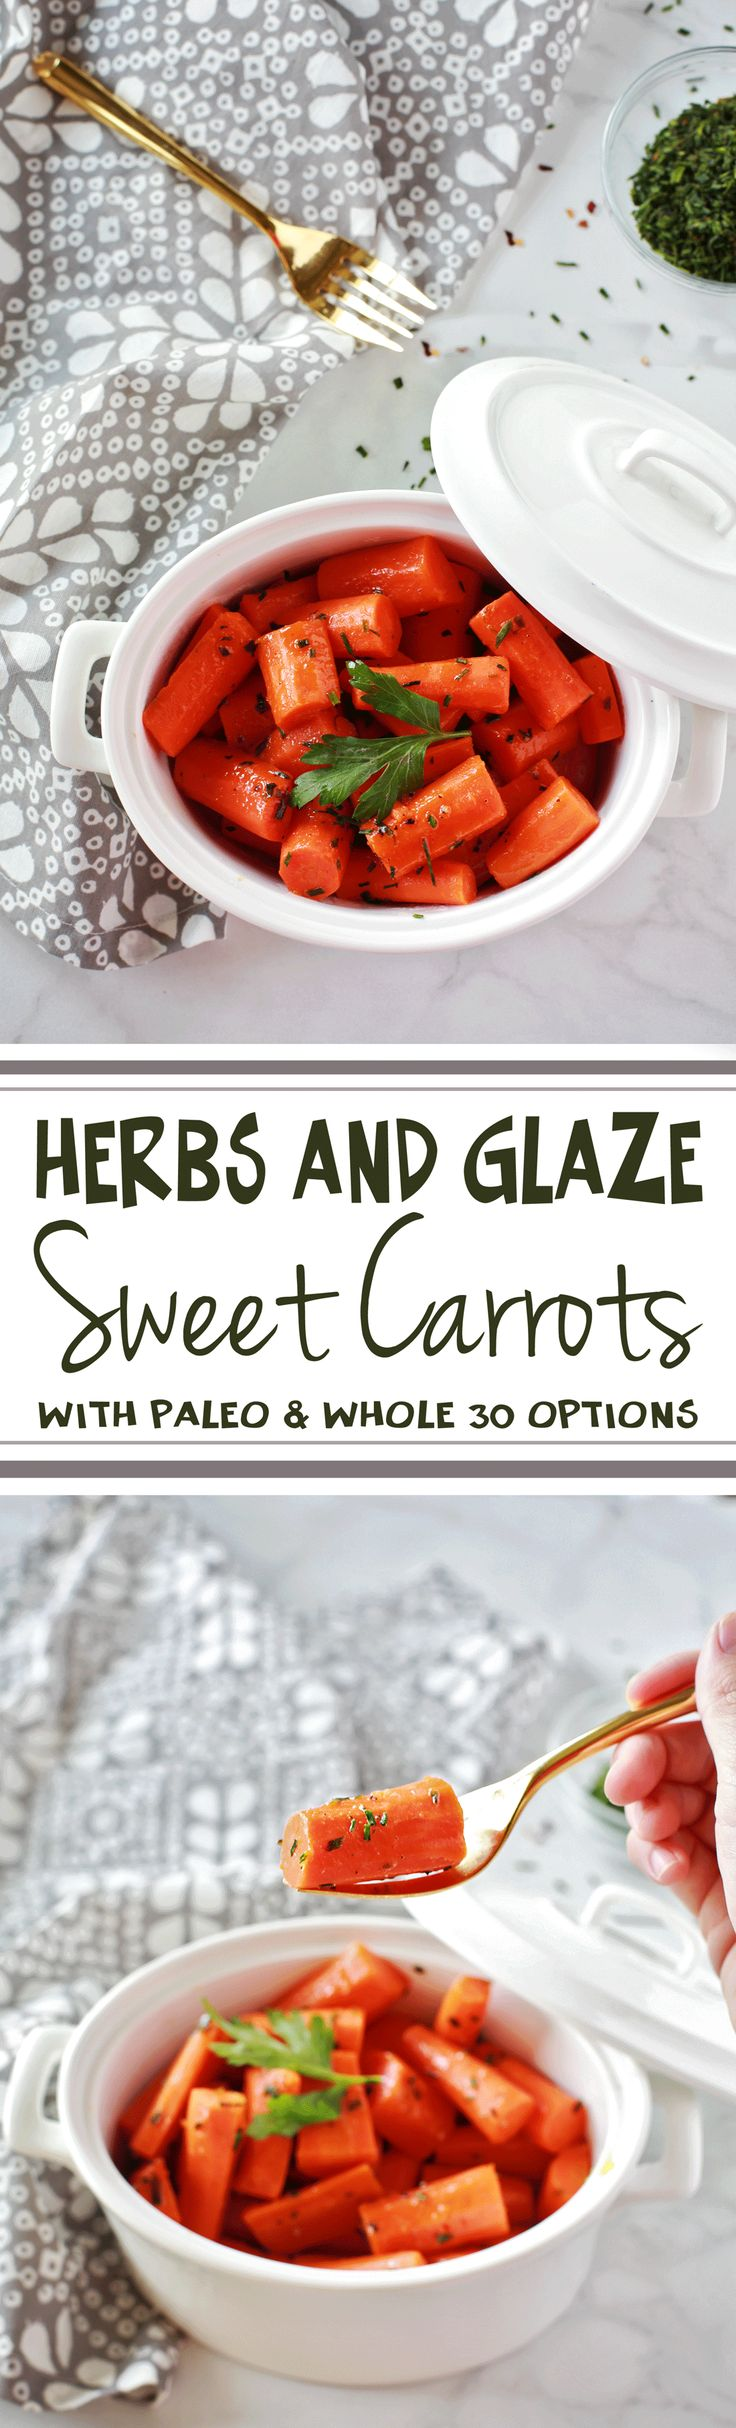 Glazed Carrots with Herbs by Flirting with Flavor. Paleo and Whole 30 ingredient options. These are SOOO delicious and the recipe is super fast and easy!